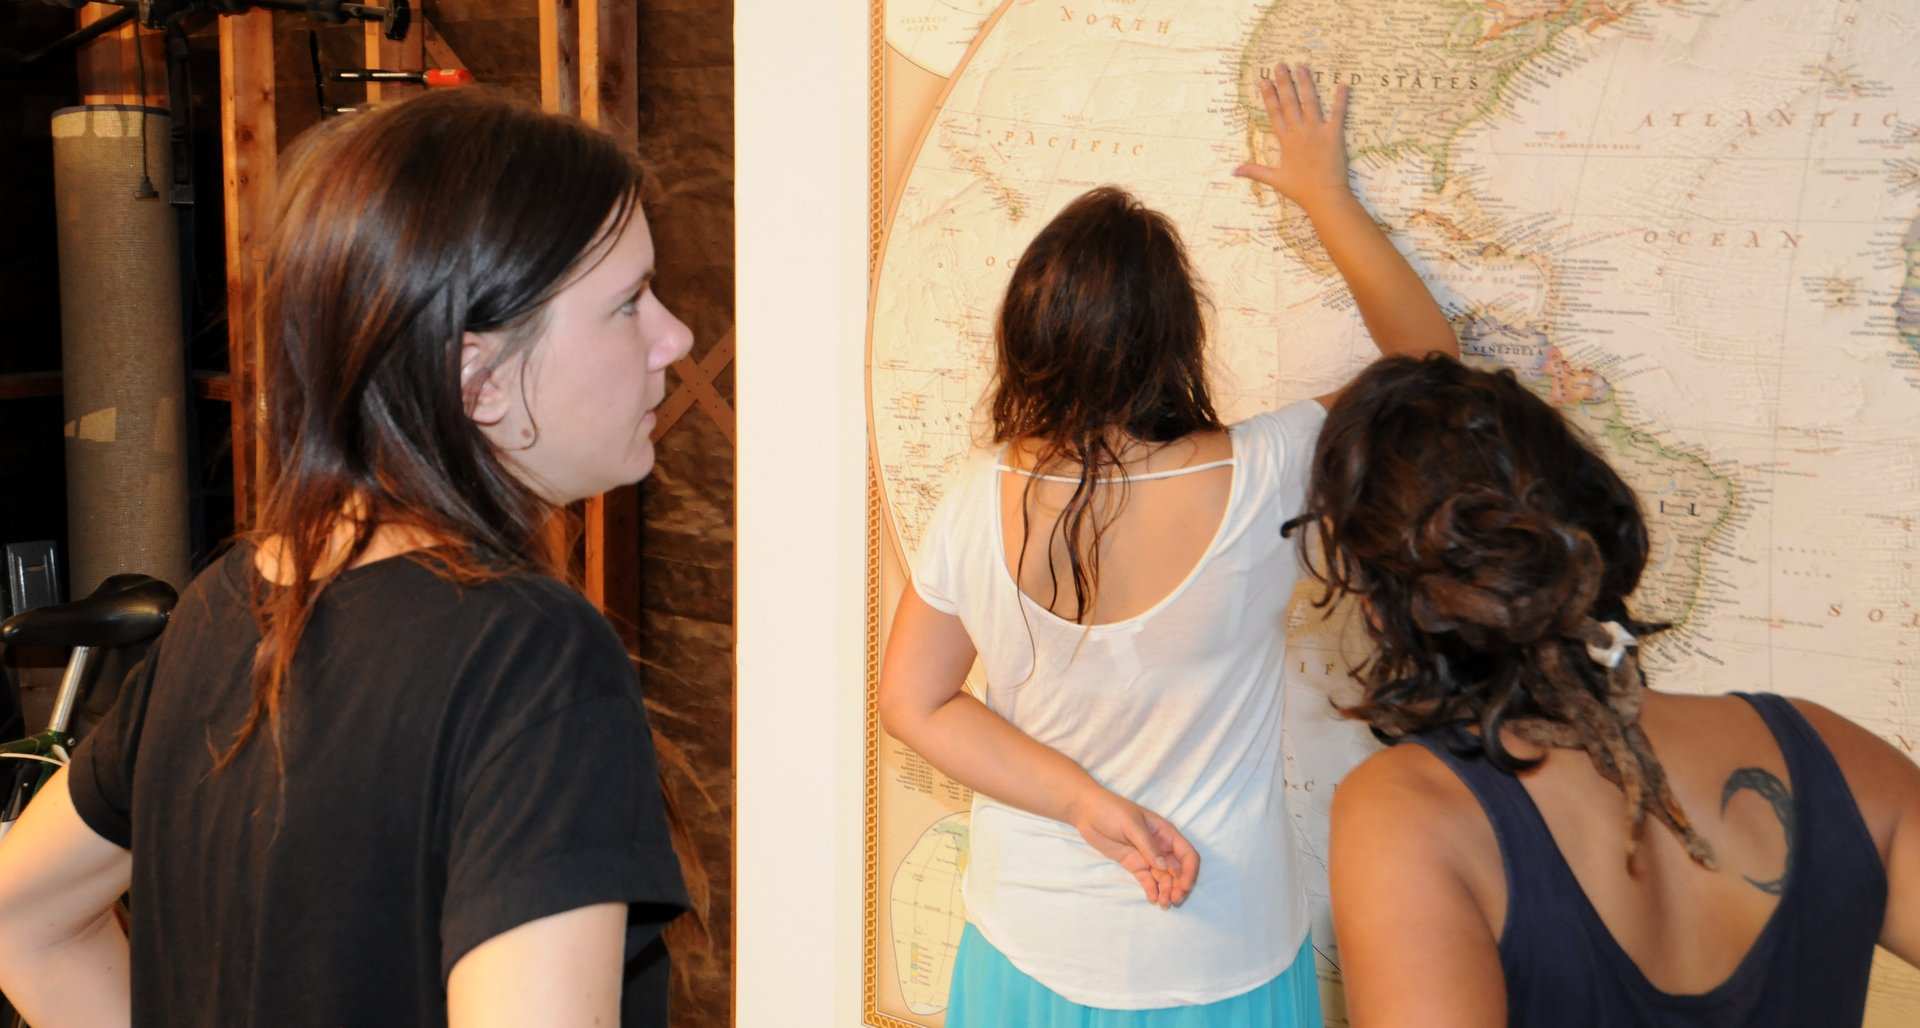 3 people looking at a 10 foot wide world map